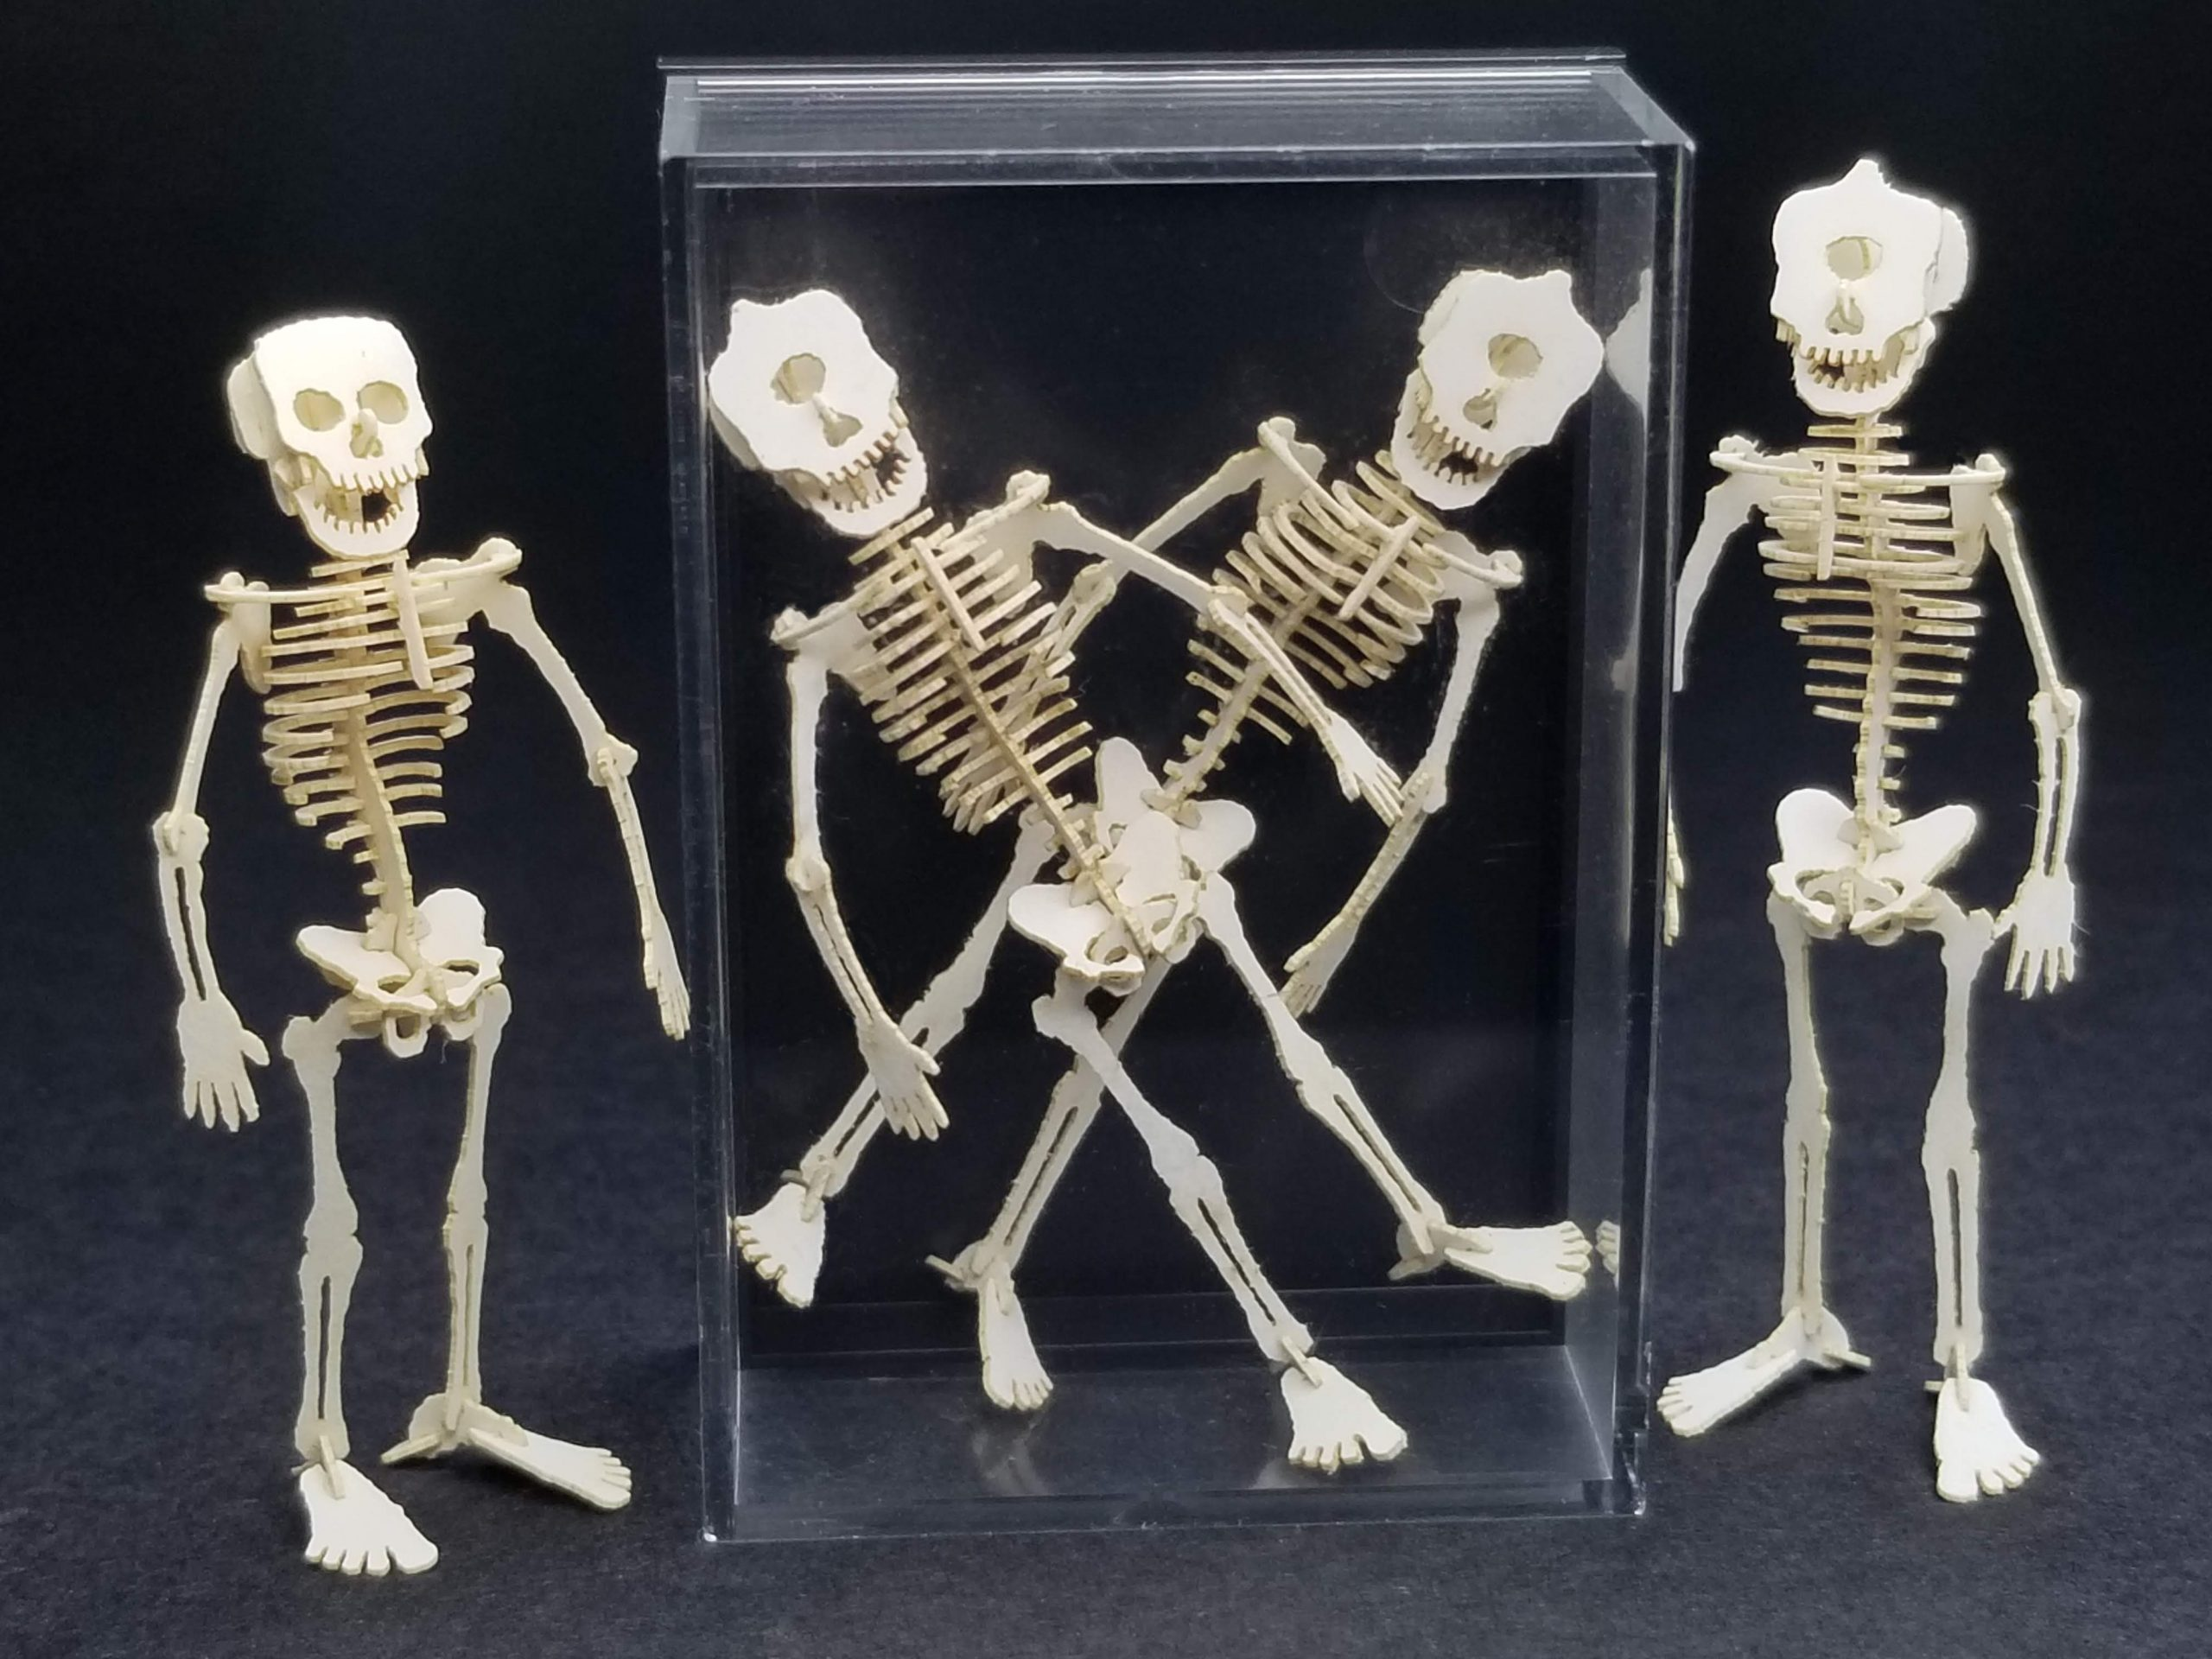 3 cyclopses and a human skeleton